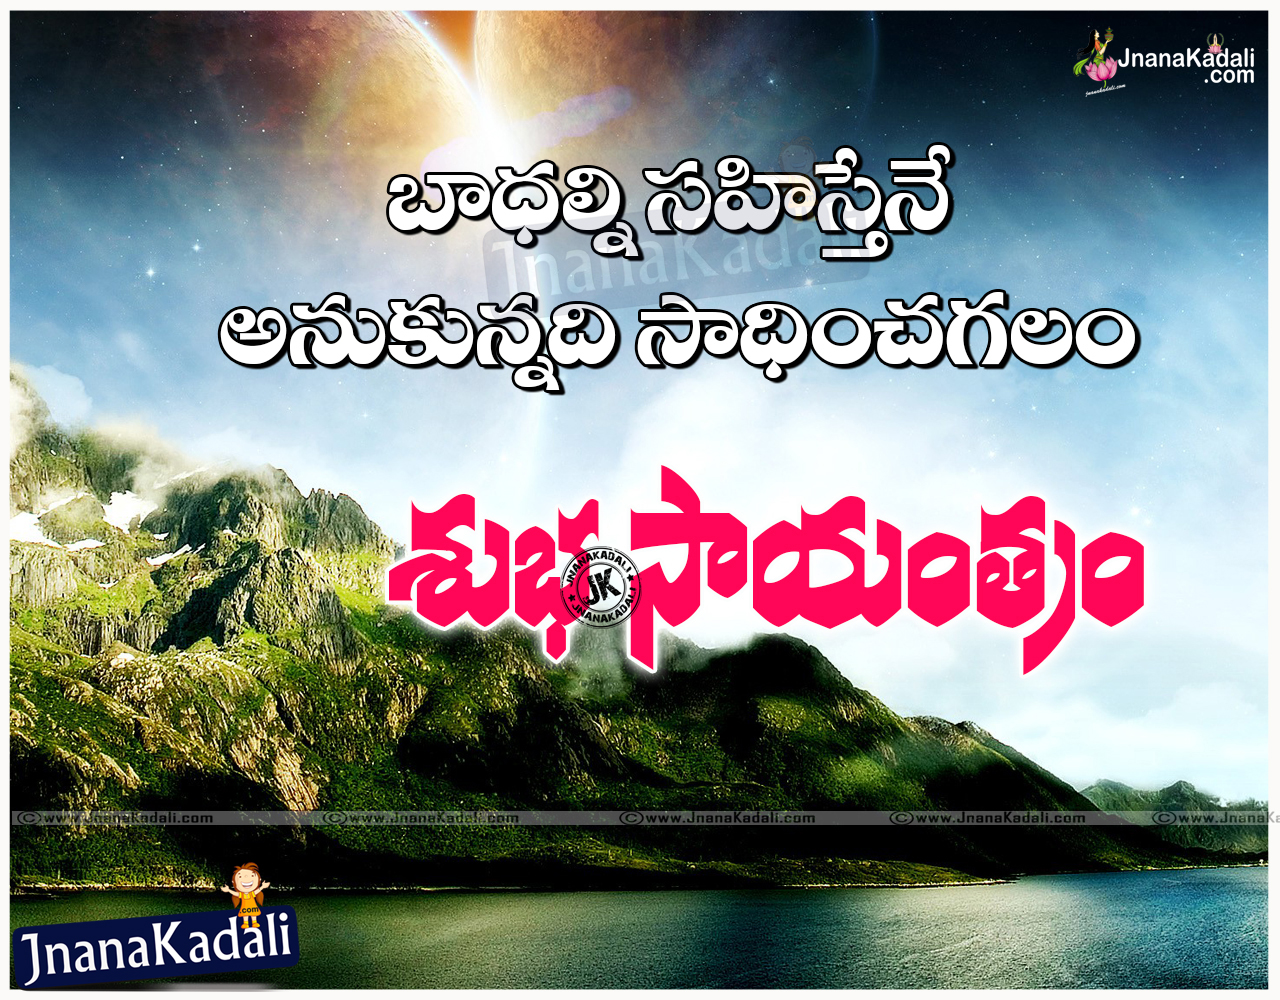 Telugu good evening wishes greetings sms quotations online jnana here is a telugu language good evening friends wishes images whatsapp good evening messages for friends cool evening quotes and messages online kristyandbryce Image collections